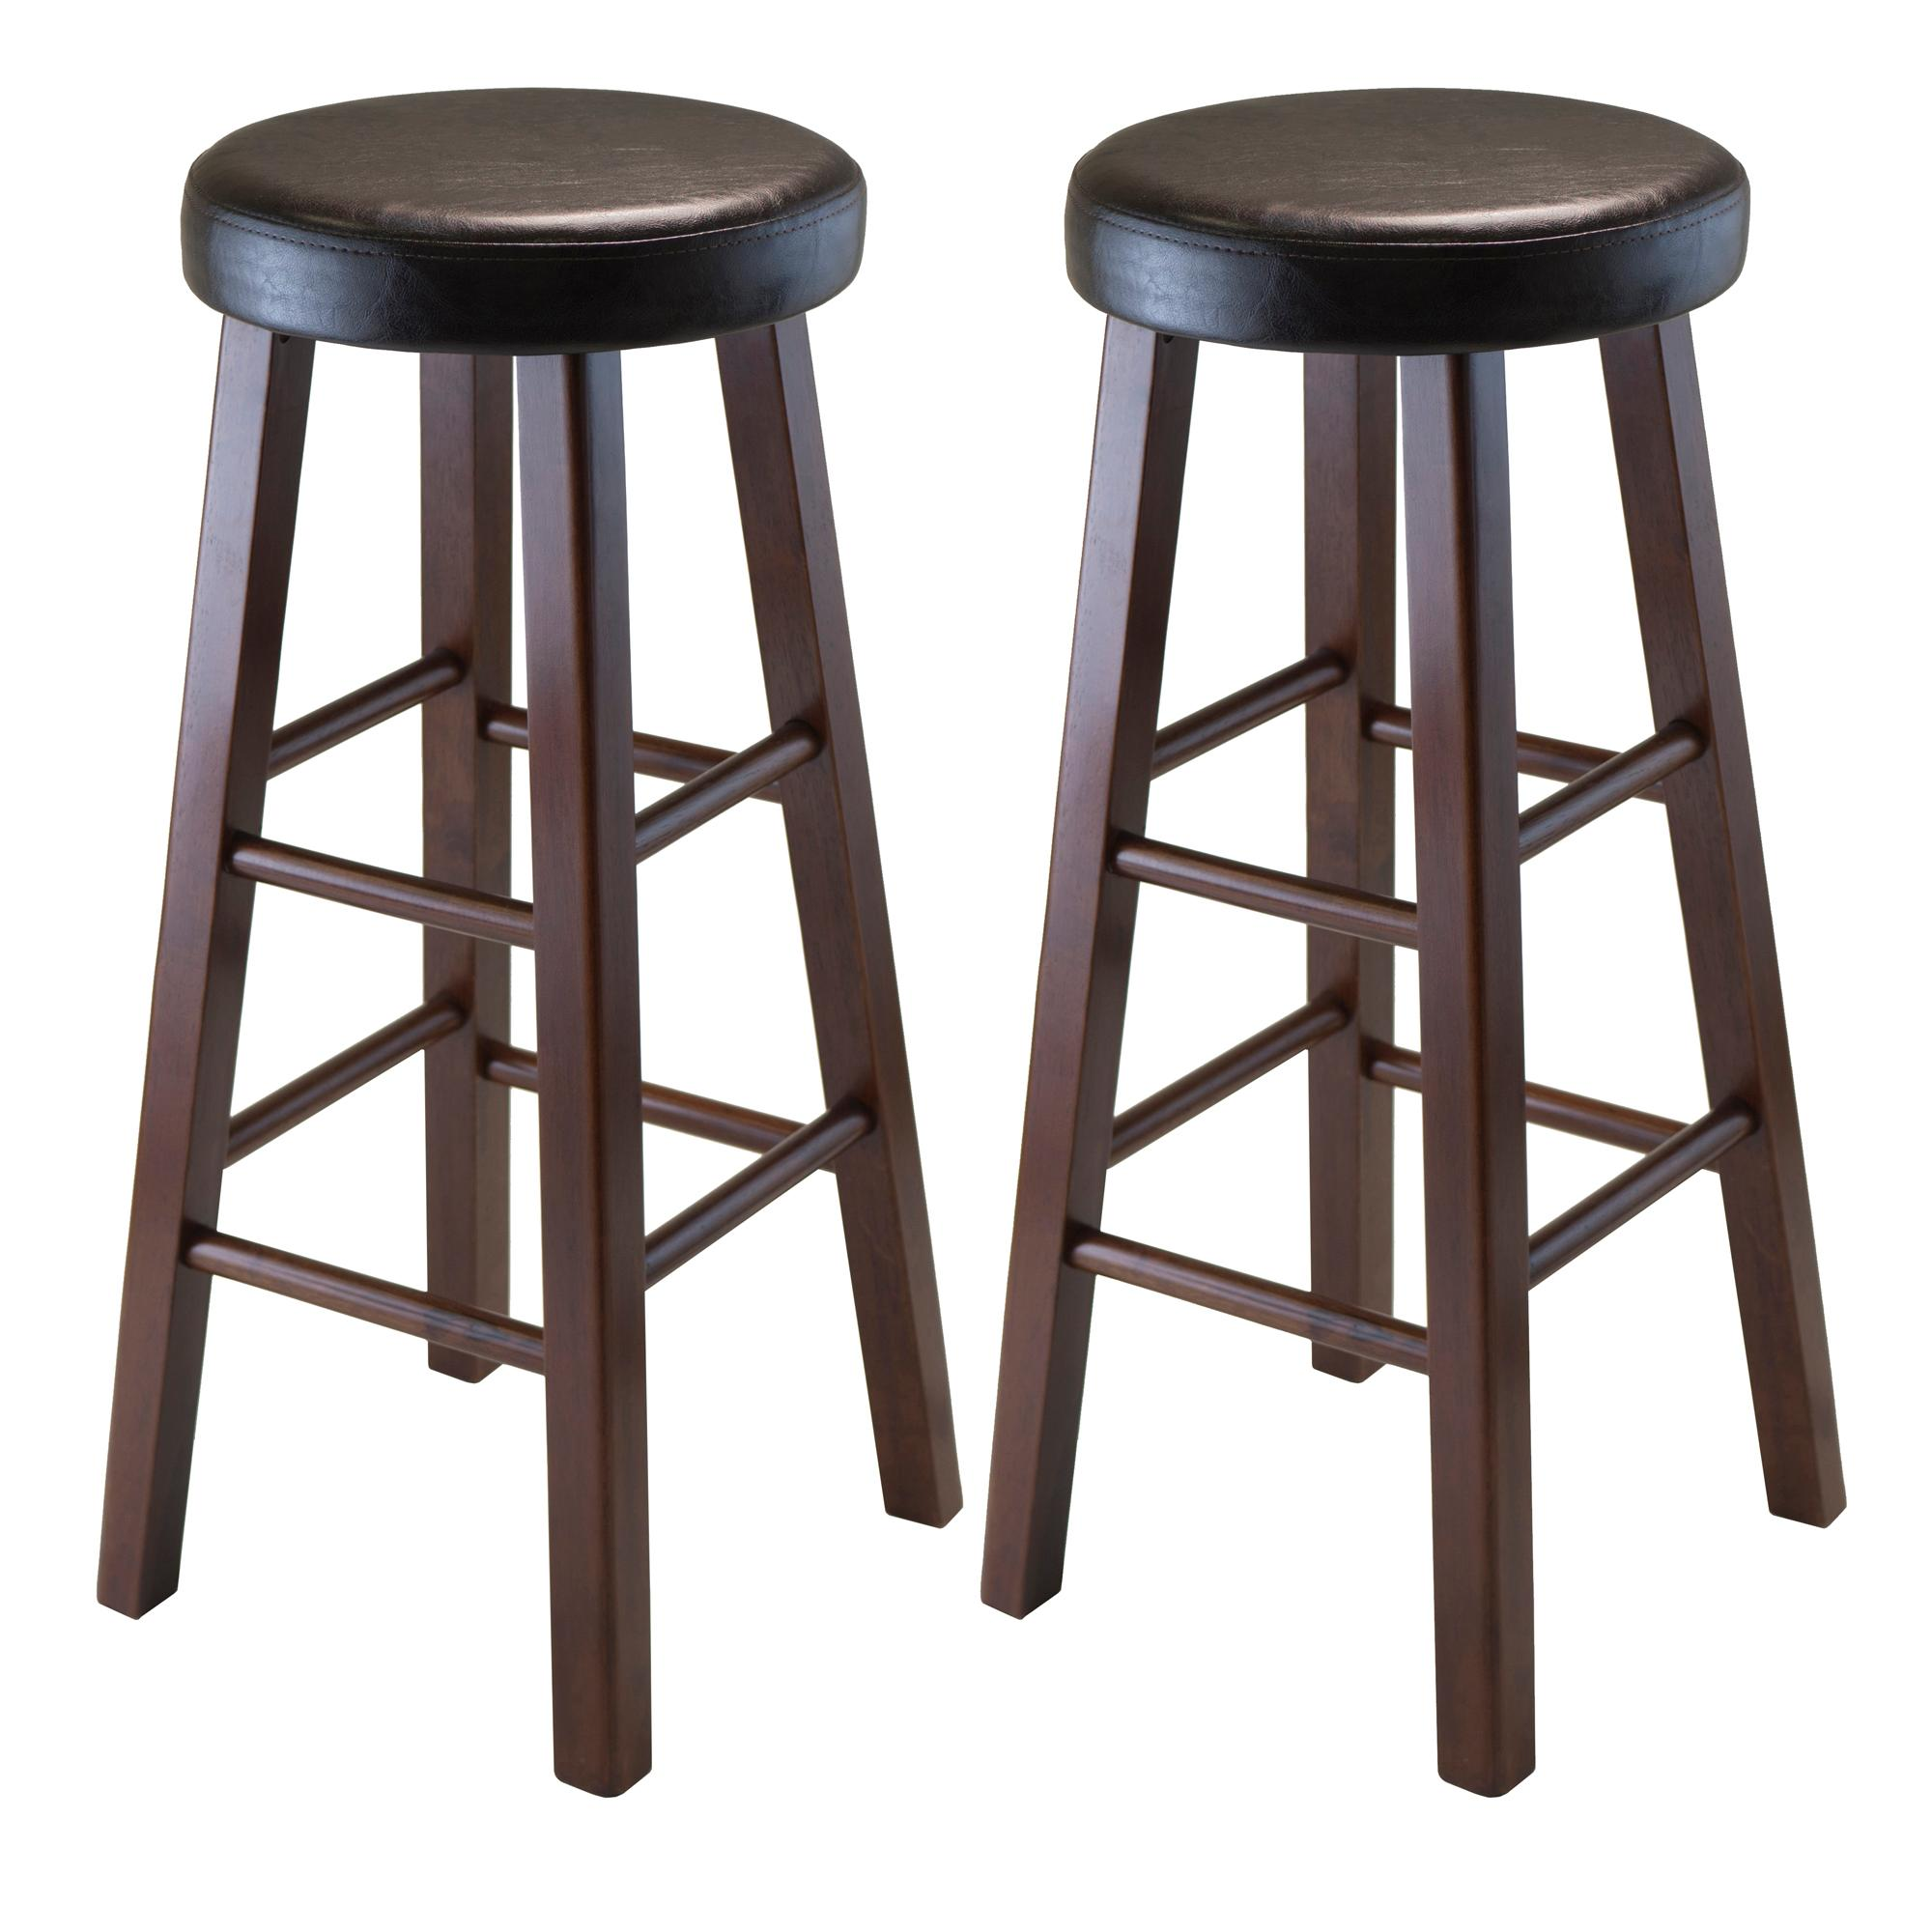 Winsome Wood Marta Assembled Round Bar Stool with PU  : 08d69573 f320 4710 bab8 7965316e1089 from www.amazon.ca size 2000 x 2000 jpeg 186kB